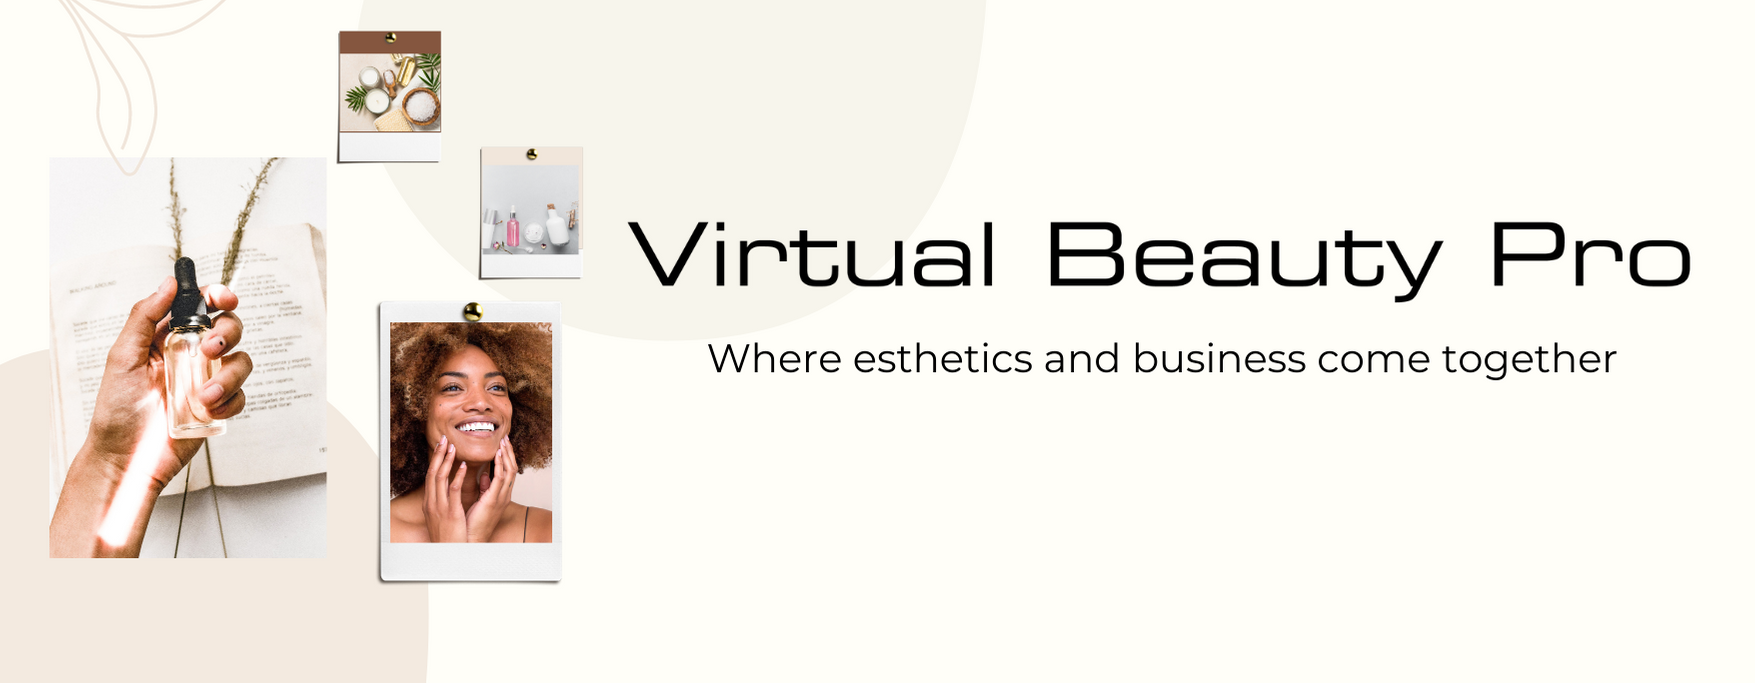 Virtual Beauty Pro